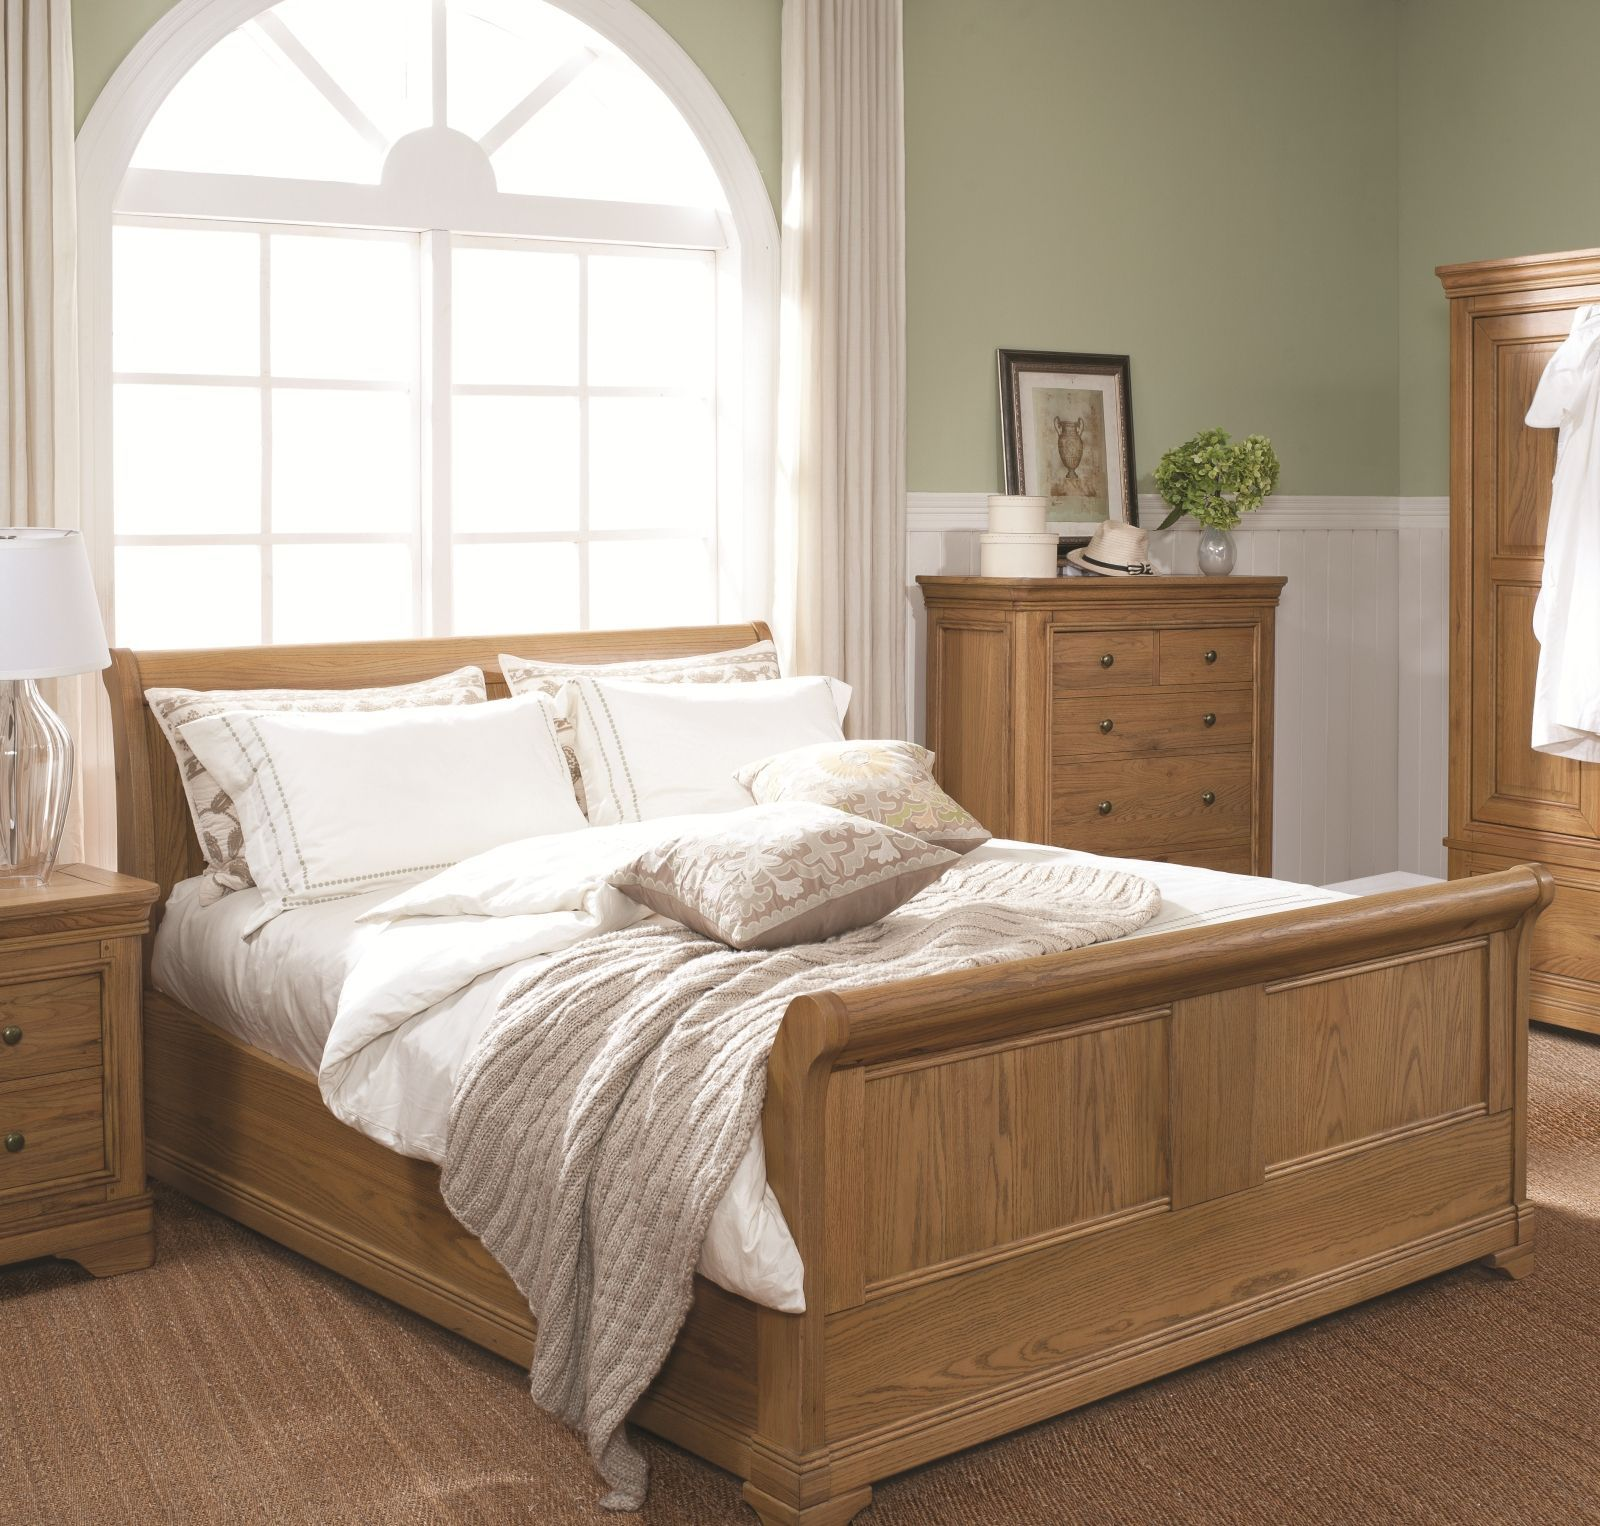 Pine Bedroom Sets Duck Egg Colour Bedroom Top 10 Bedroom Paint Colors Guest Bedroom Decorating Ideas: LIVINGSTONE OAK FURNITURE